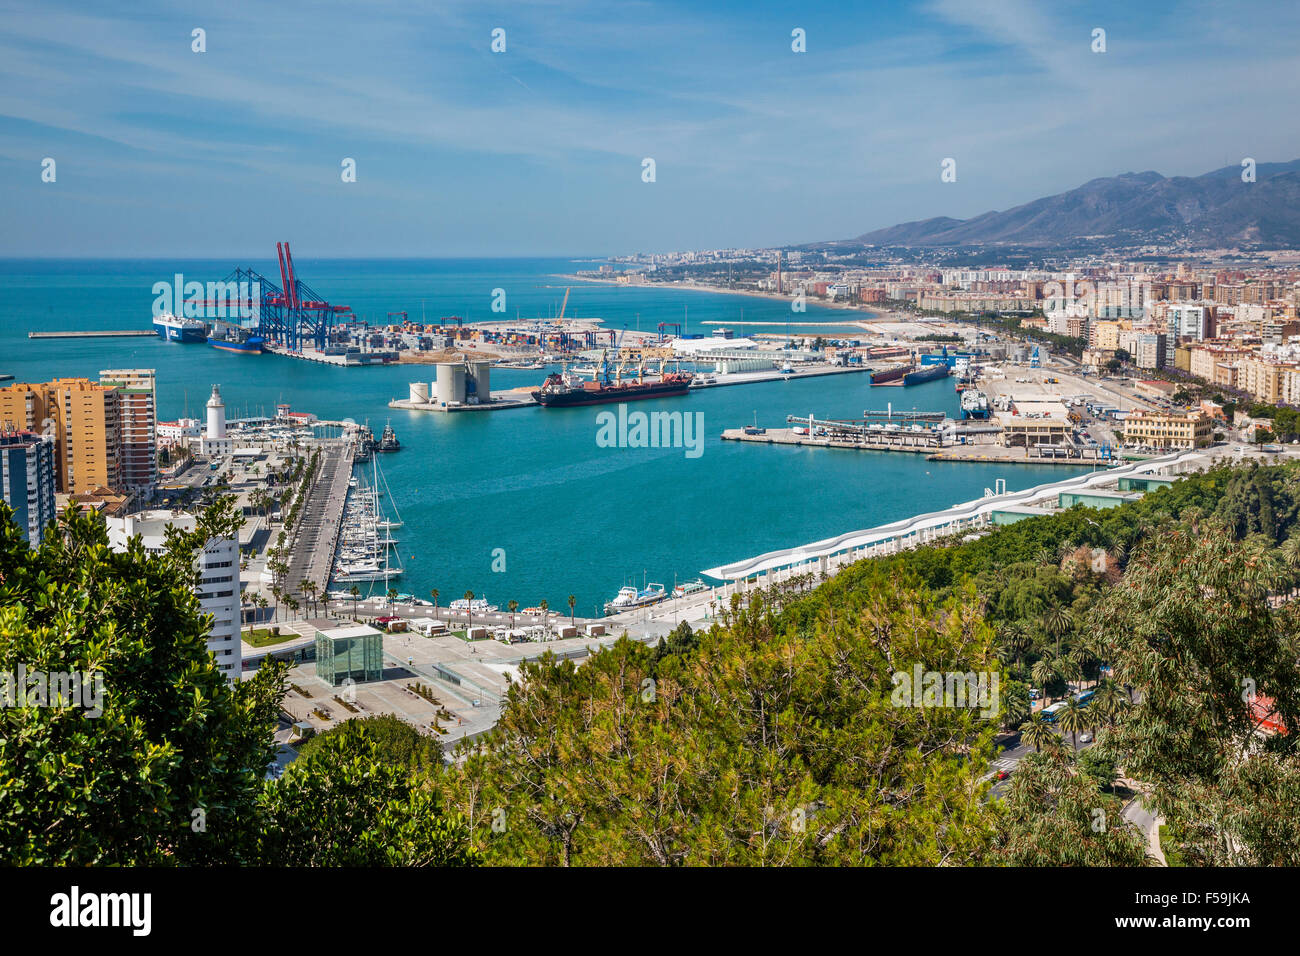 Spain, Andalusia, Malaga Province, view of the Port of Malaga - Stock Image